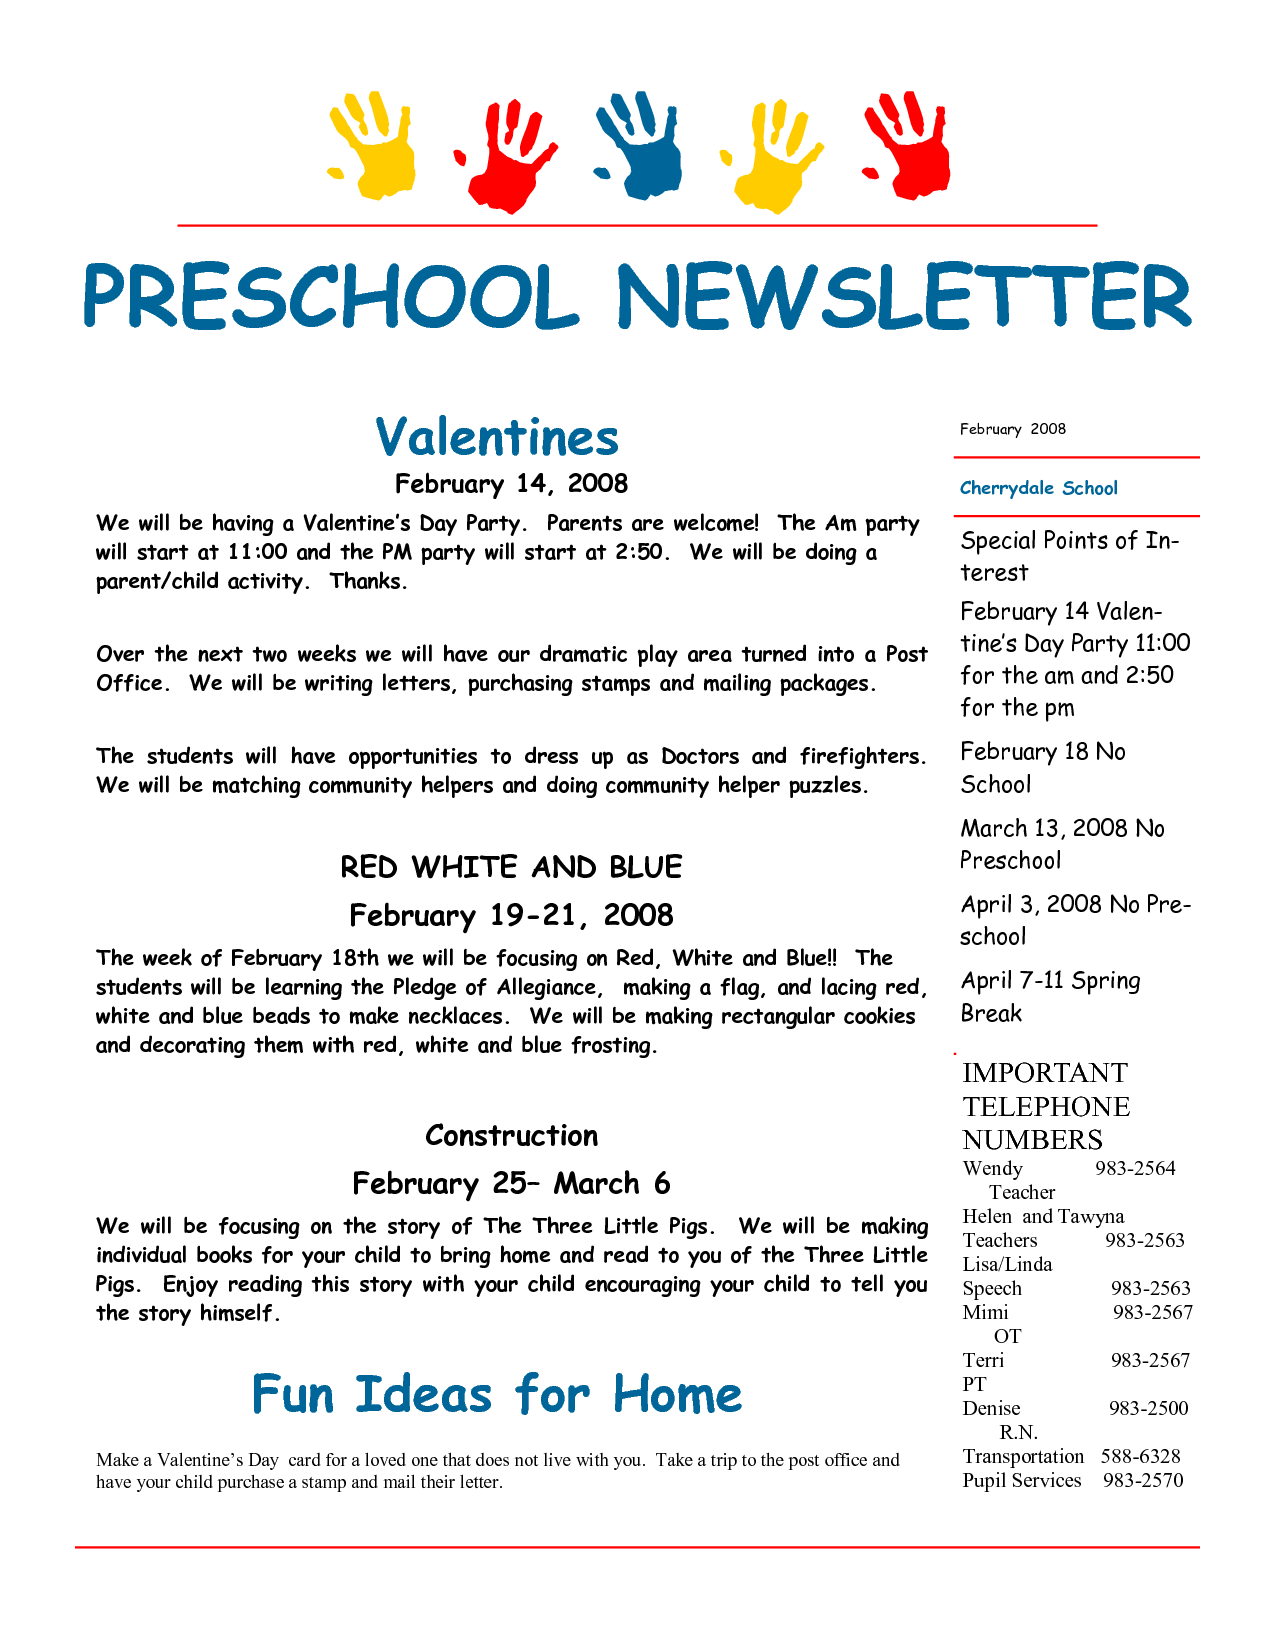 Newsletter For Preschool Parents Template